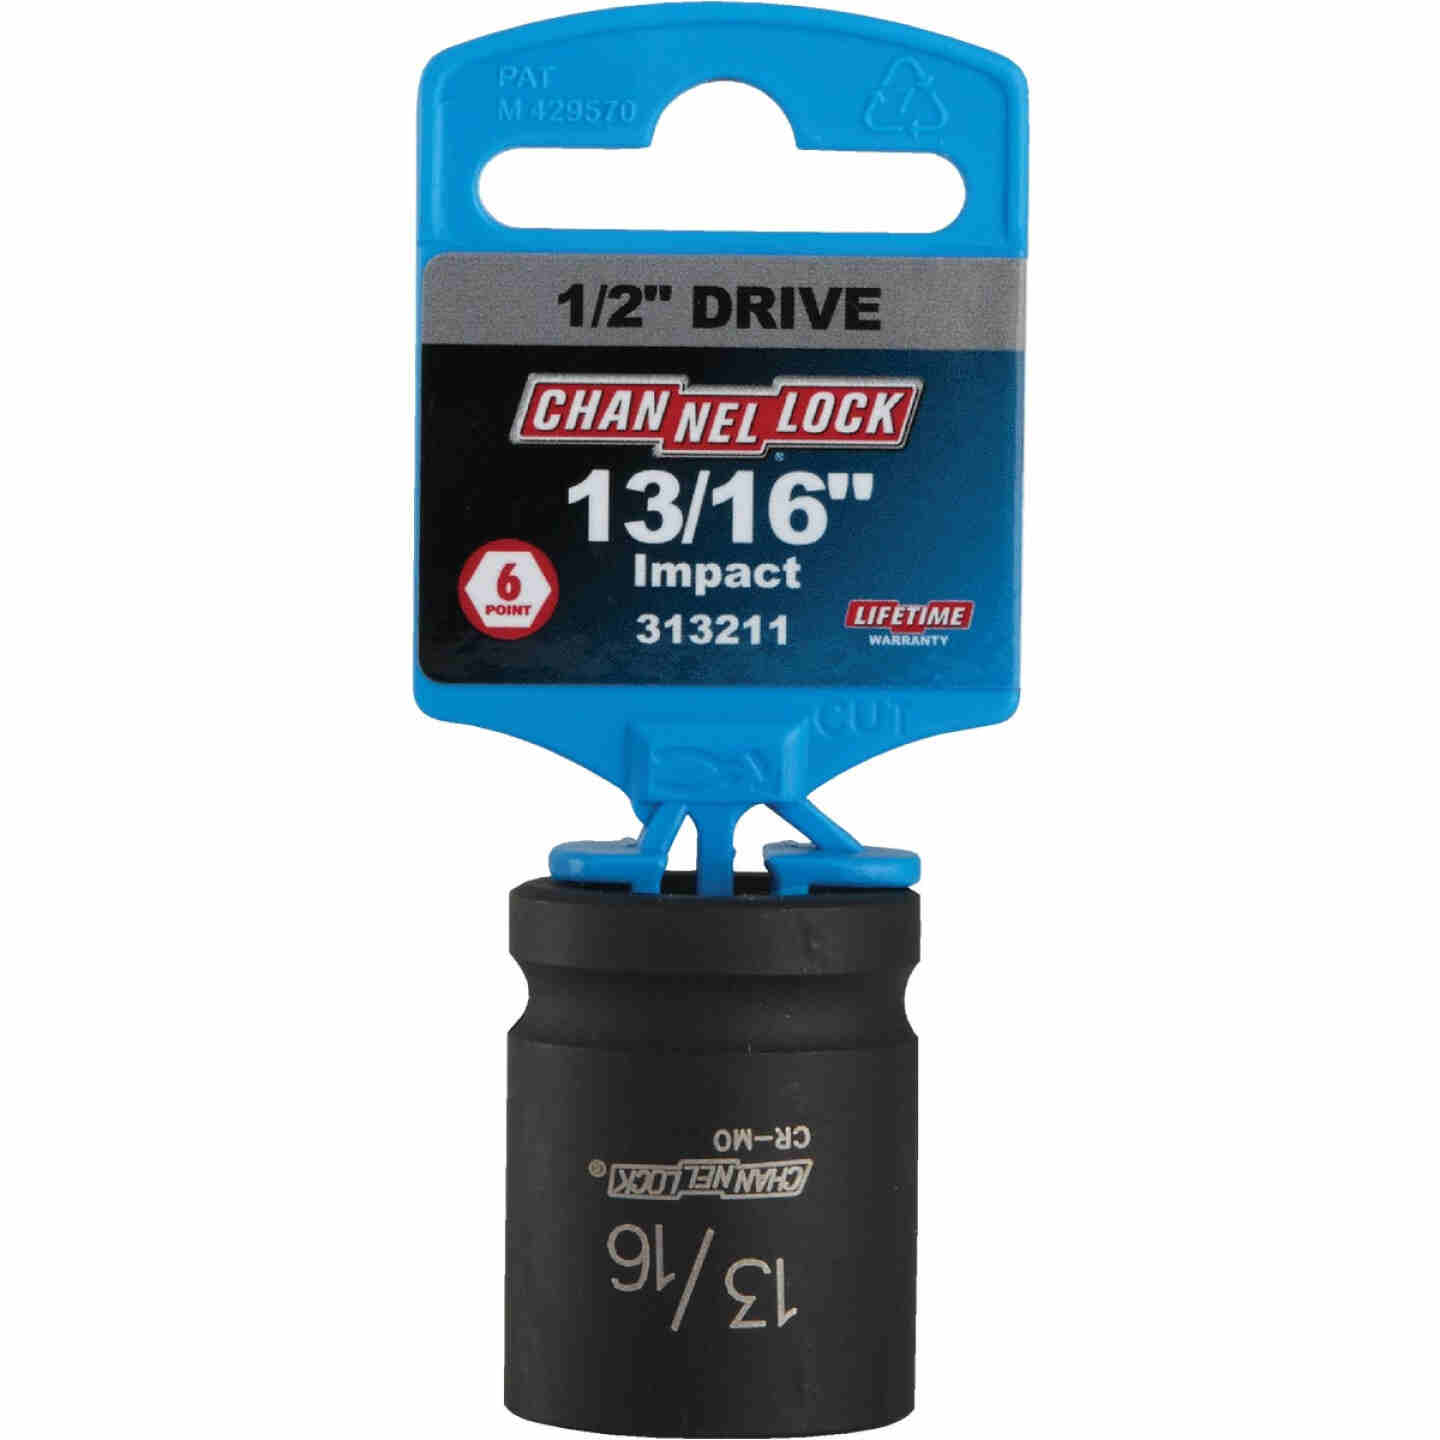 Channellock 1/2 In. Drive 13/16 In. 6-Point Shallow Standard Impact Socket Image 2